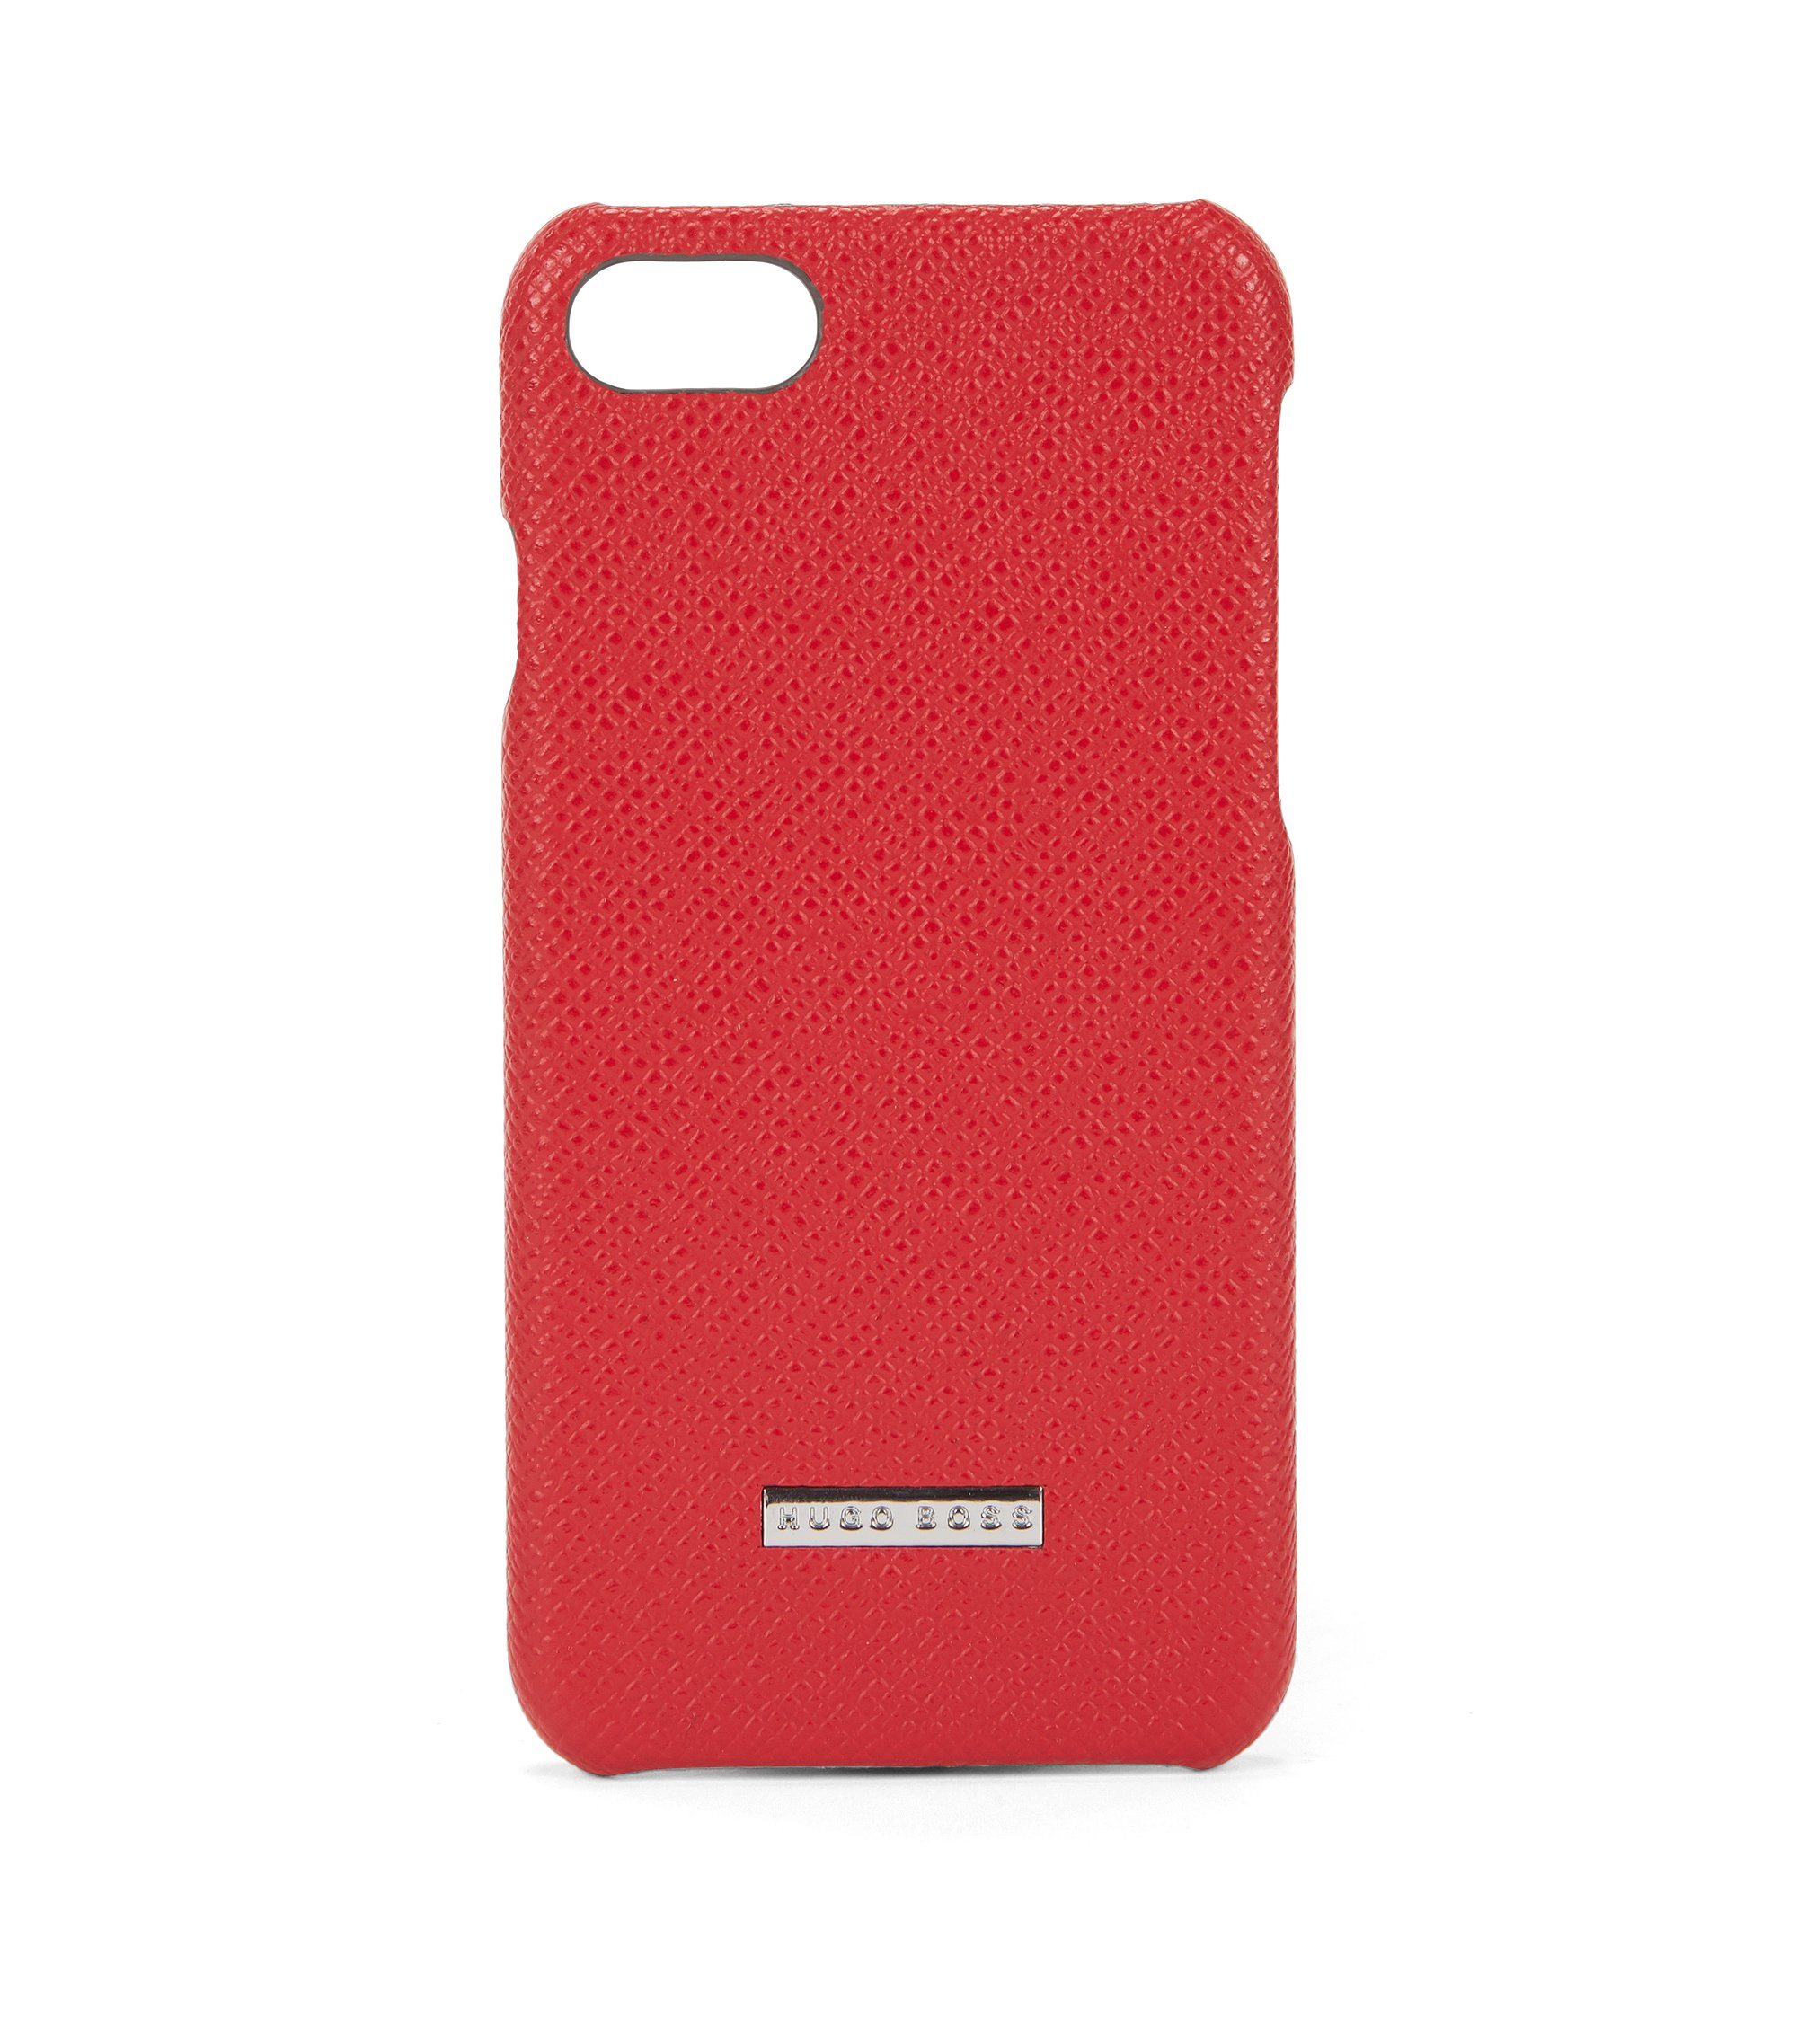 Embossed leather iPhone 7 Case | Signature Phone 7, Red